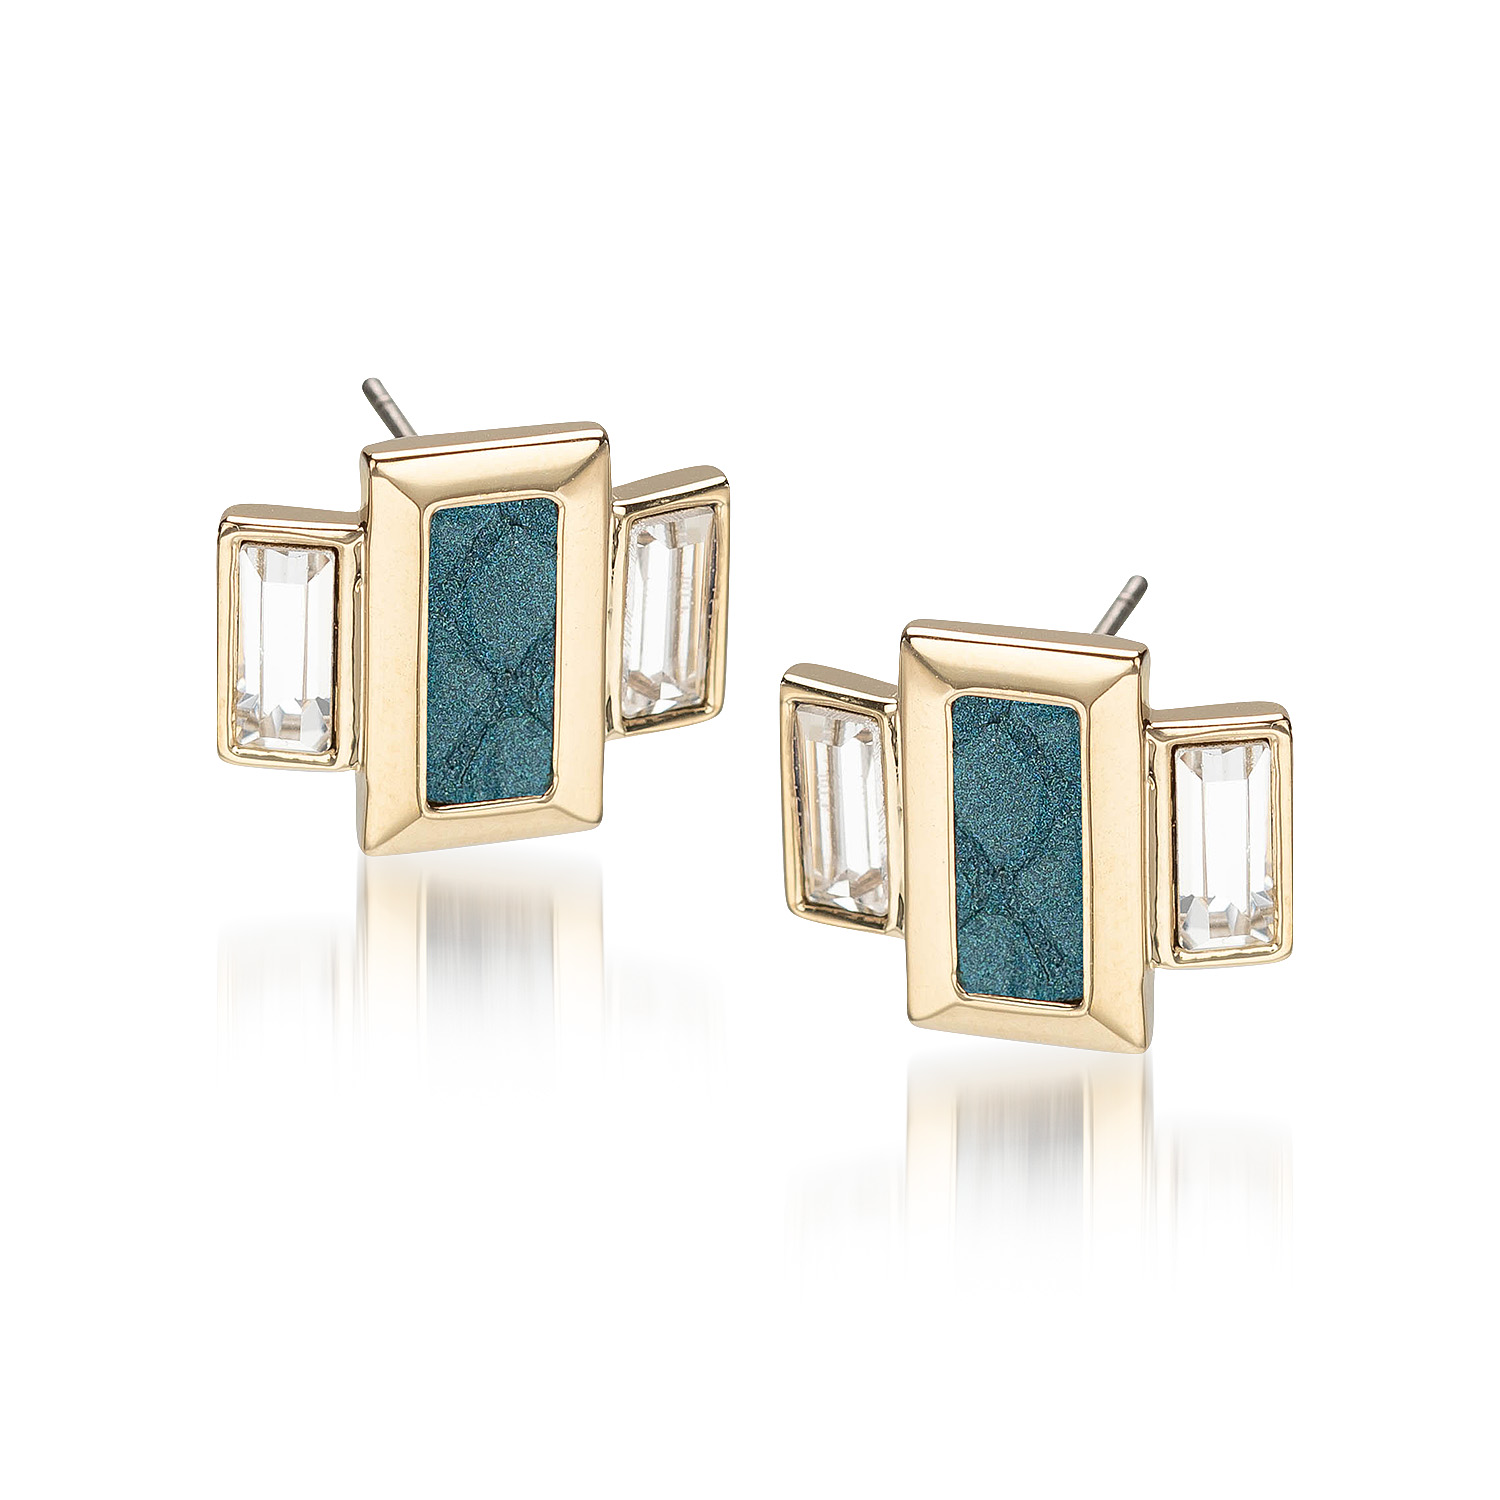 Emerald Cut Crystal Earrings Agate Fairhaven